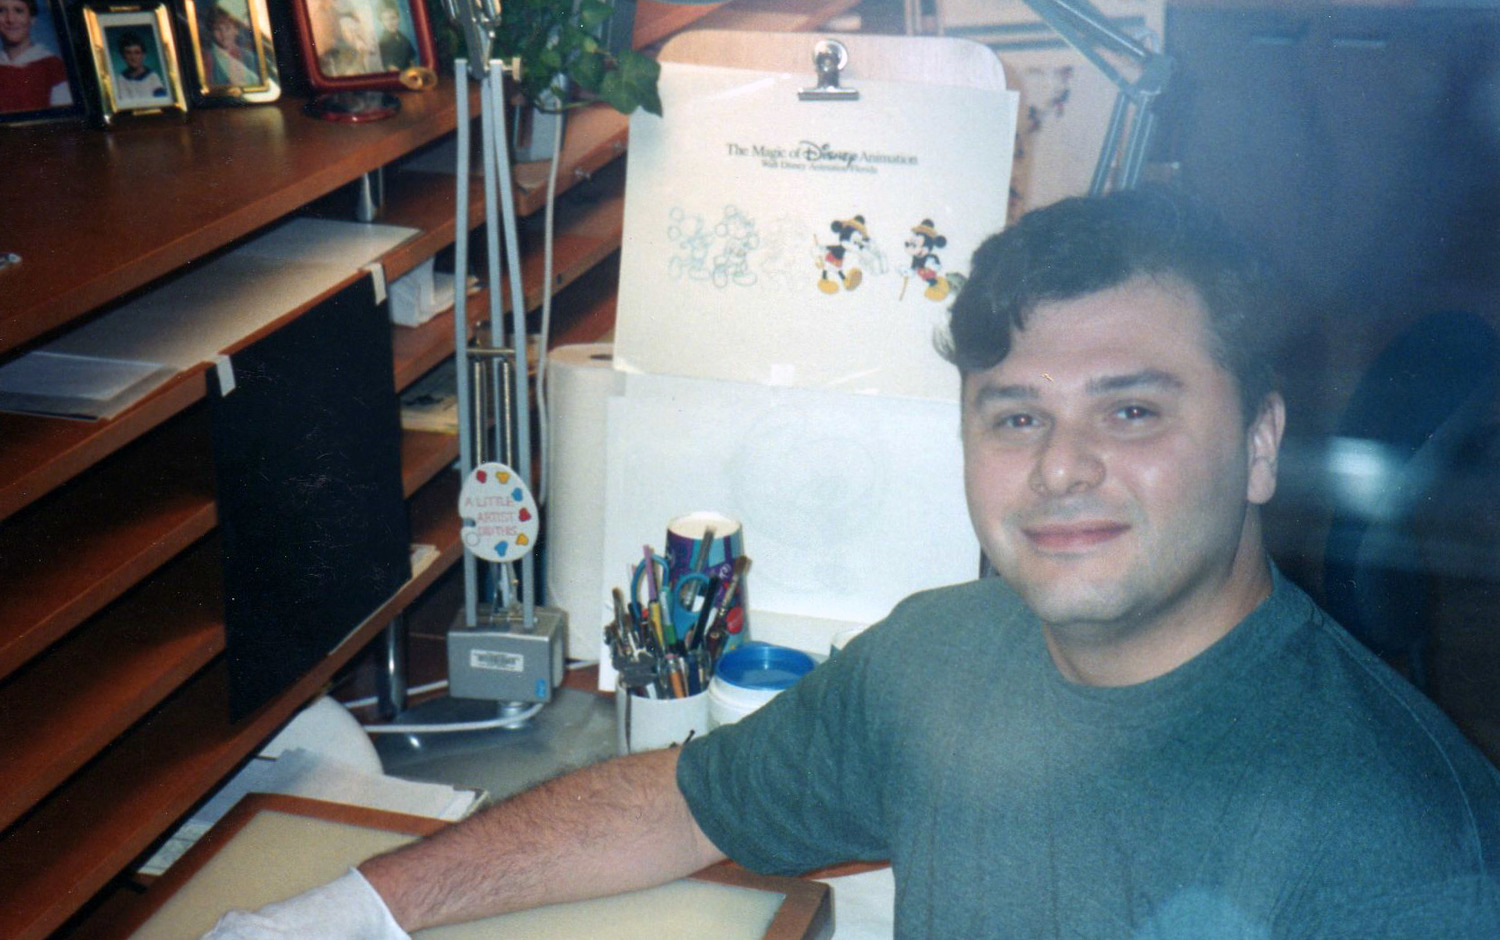 A view of the Ink and Paint studio desks from the audience side of the animation tour back in early 1997. Getting used to wearing gloves to paint cels was quite necessary to keep the cels from fingerprints, scratches and dings.